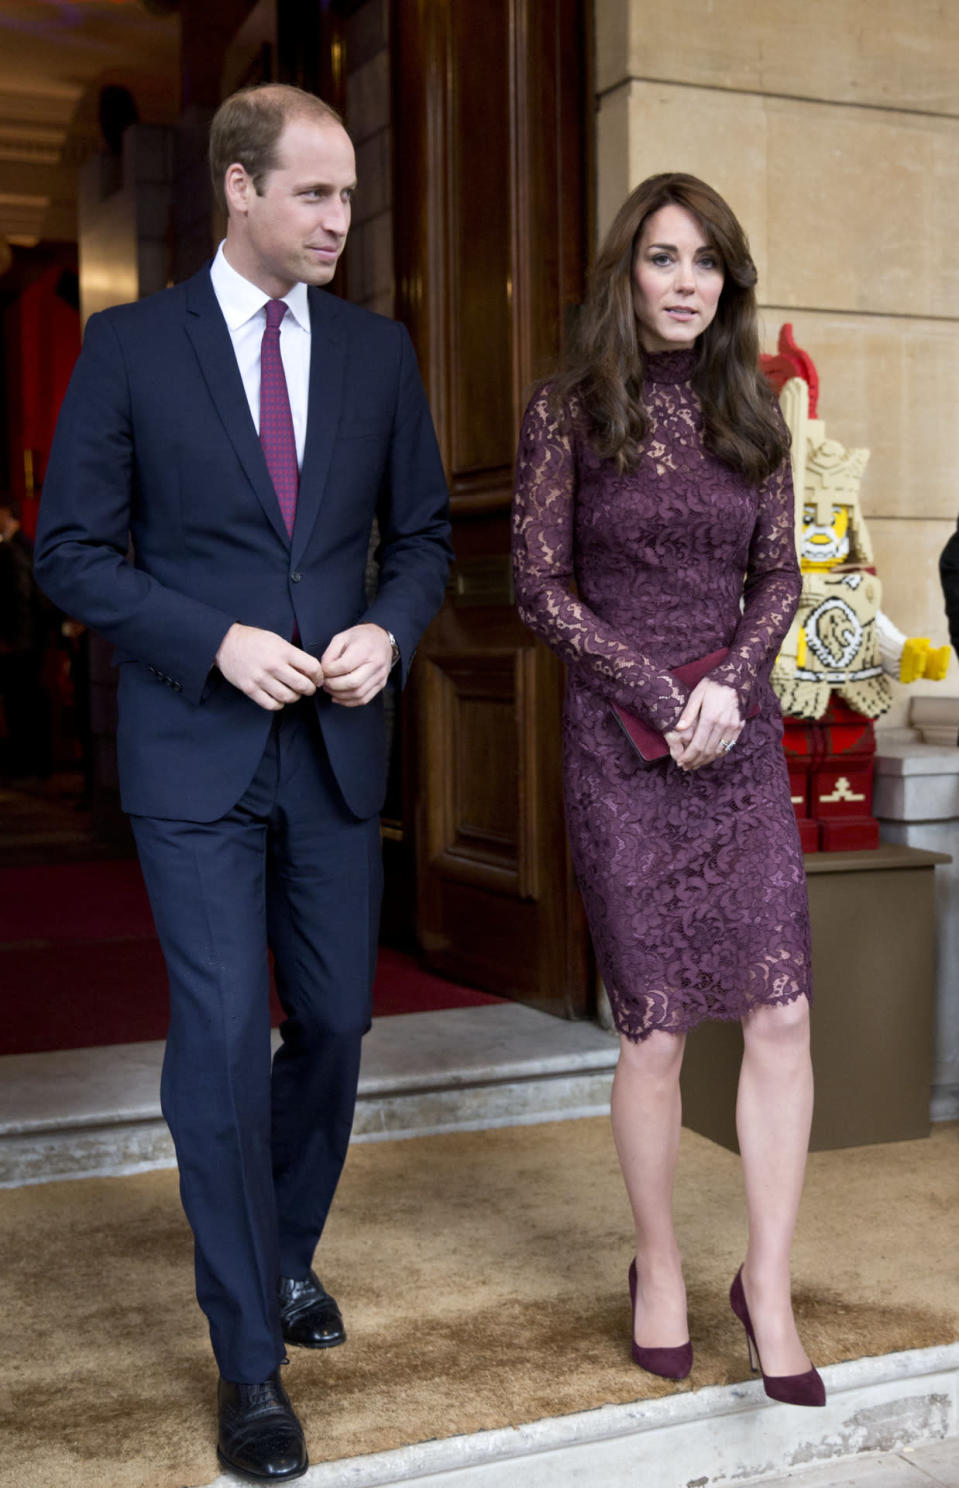 <p>Kate met the President of China in London in a lacy plum dress designed by Dolce & Gabbana. She teamed the look with matching Gianvito Rossi heels and a red Mulberry clutch.</p><p><i>[Photo: PA]</i></p>